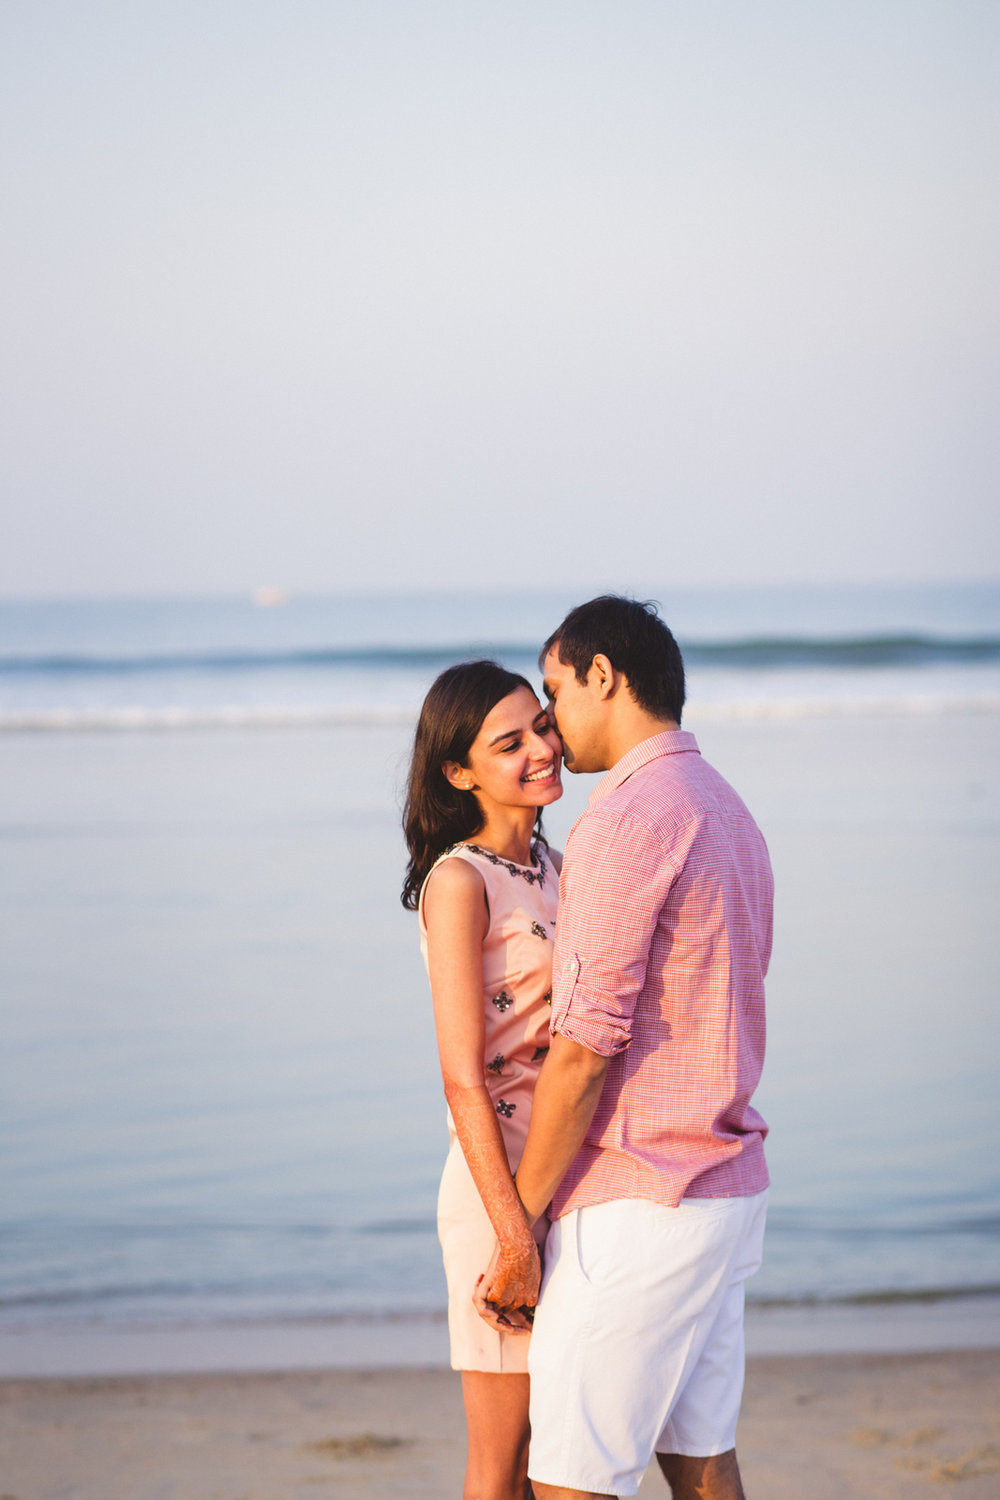 zuri-goa-wedding-couple-session-intocandid-photography-rg-16.jpg